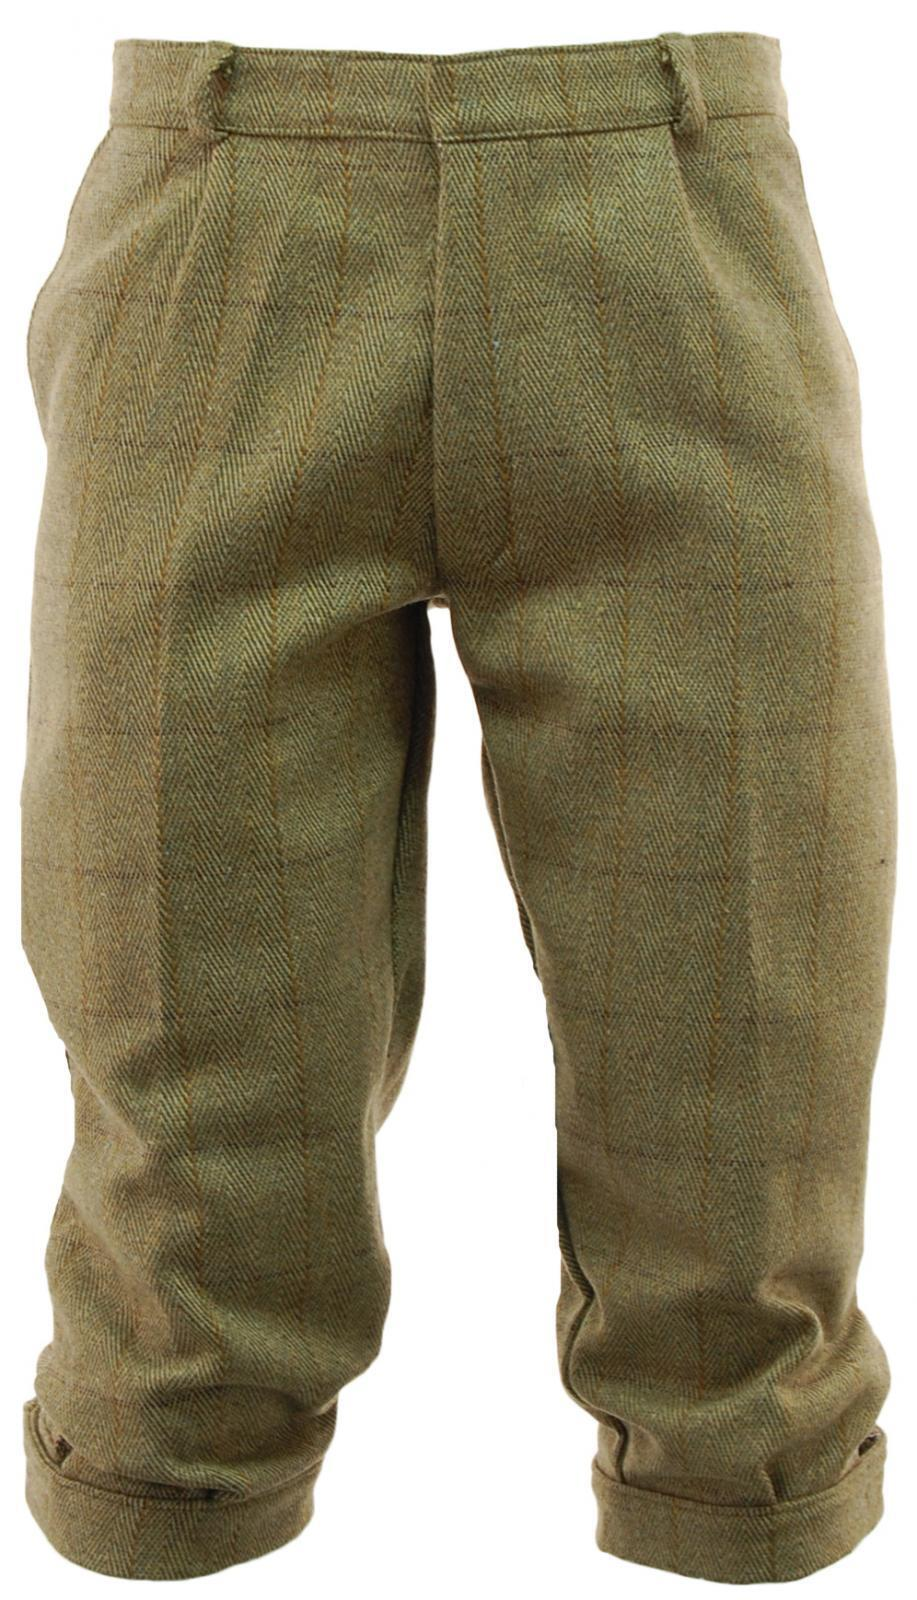 Game Derby Light Tweed Breeks Men's Trousers Country Game Hunting Shooting